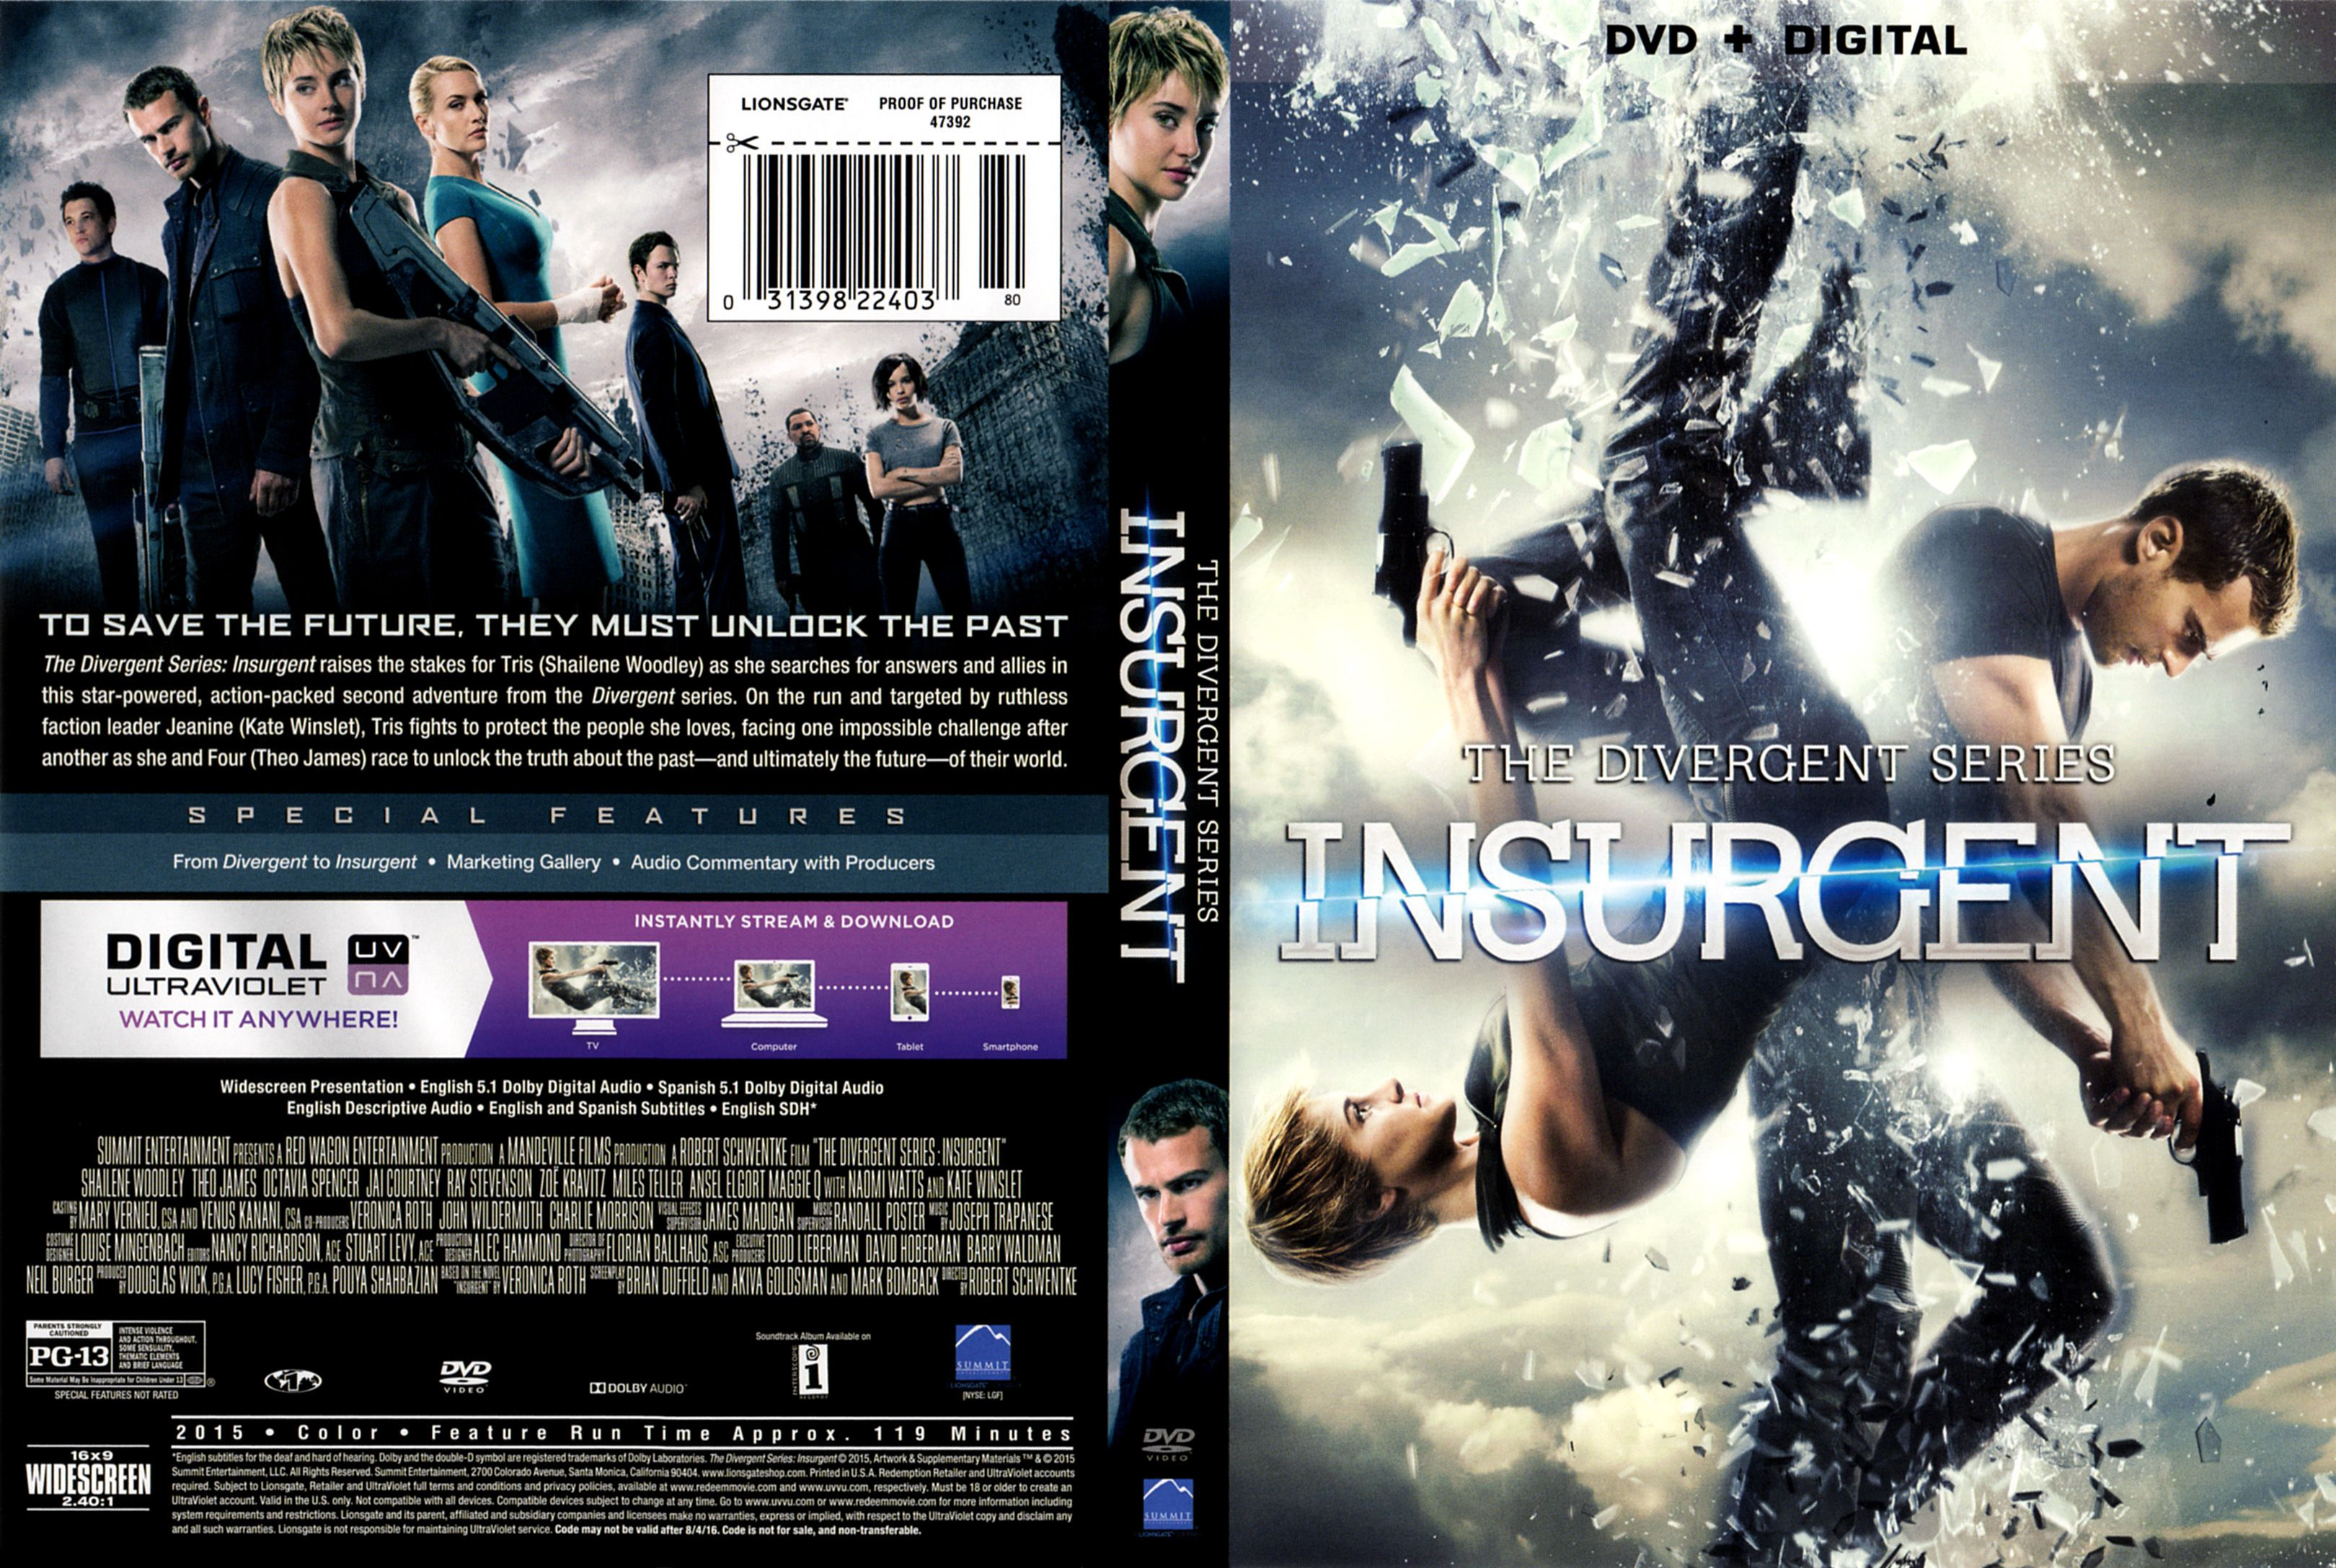 449bf178861400 Free Insurgent DVD Cover   Label (2015) R1 ready to download and print.  Free online retail movie dvd covers art archive database.